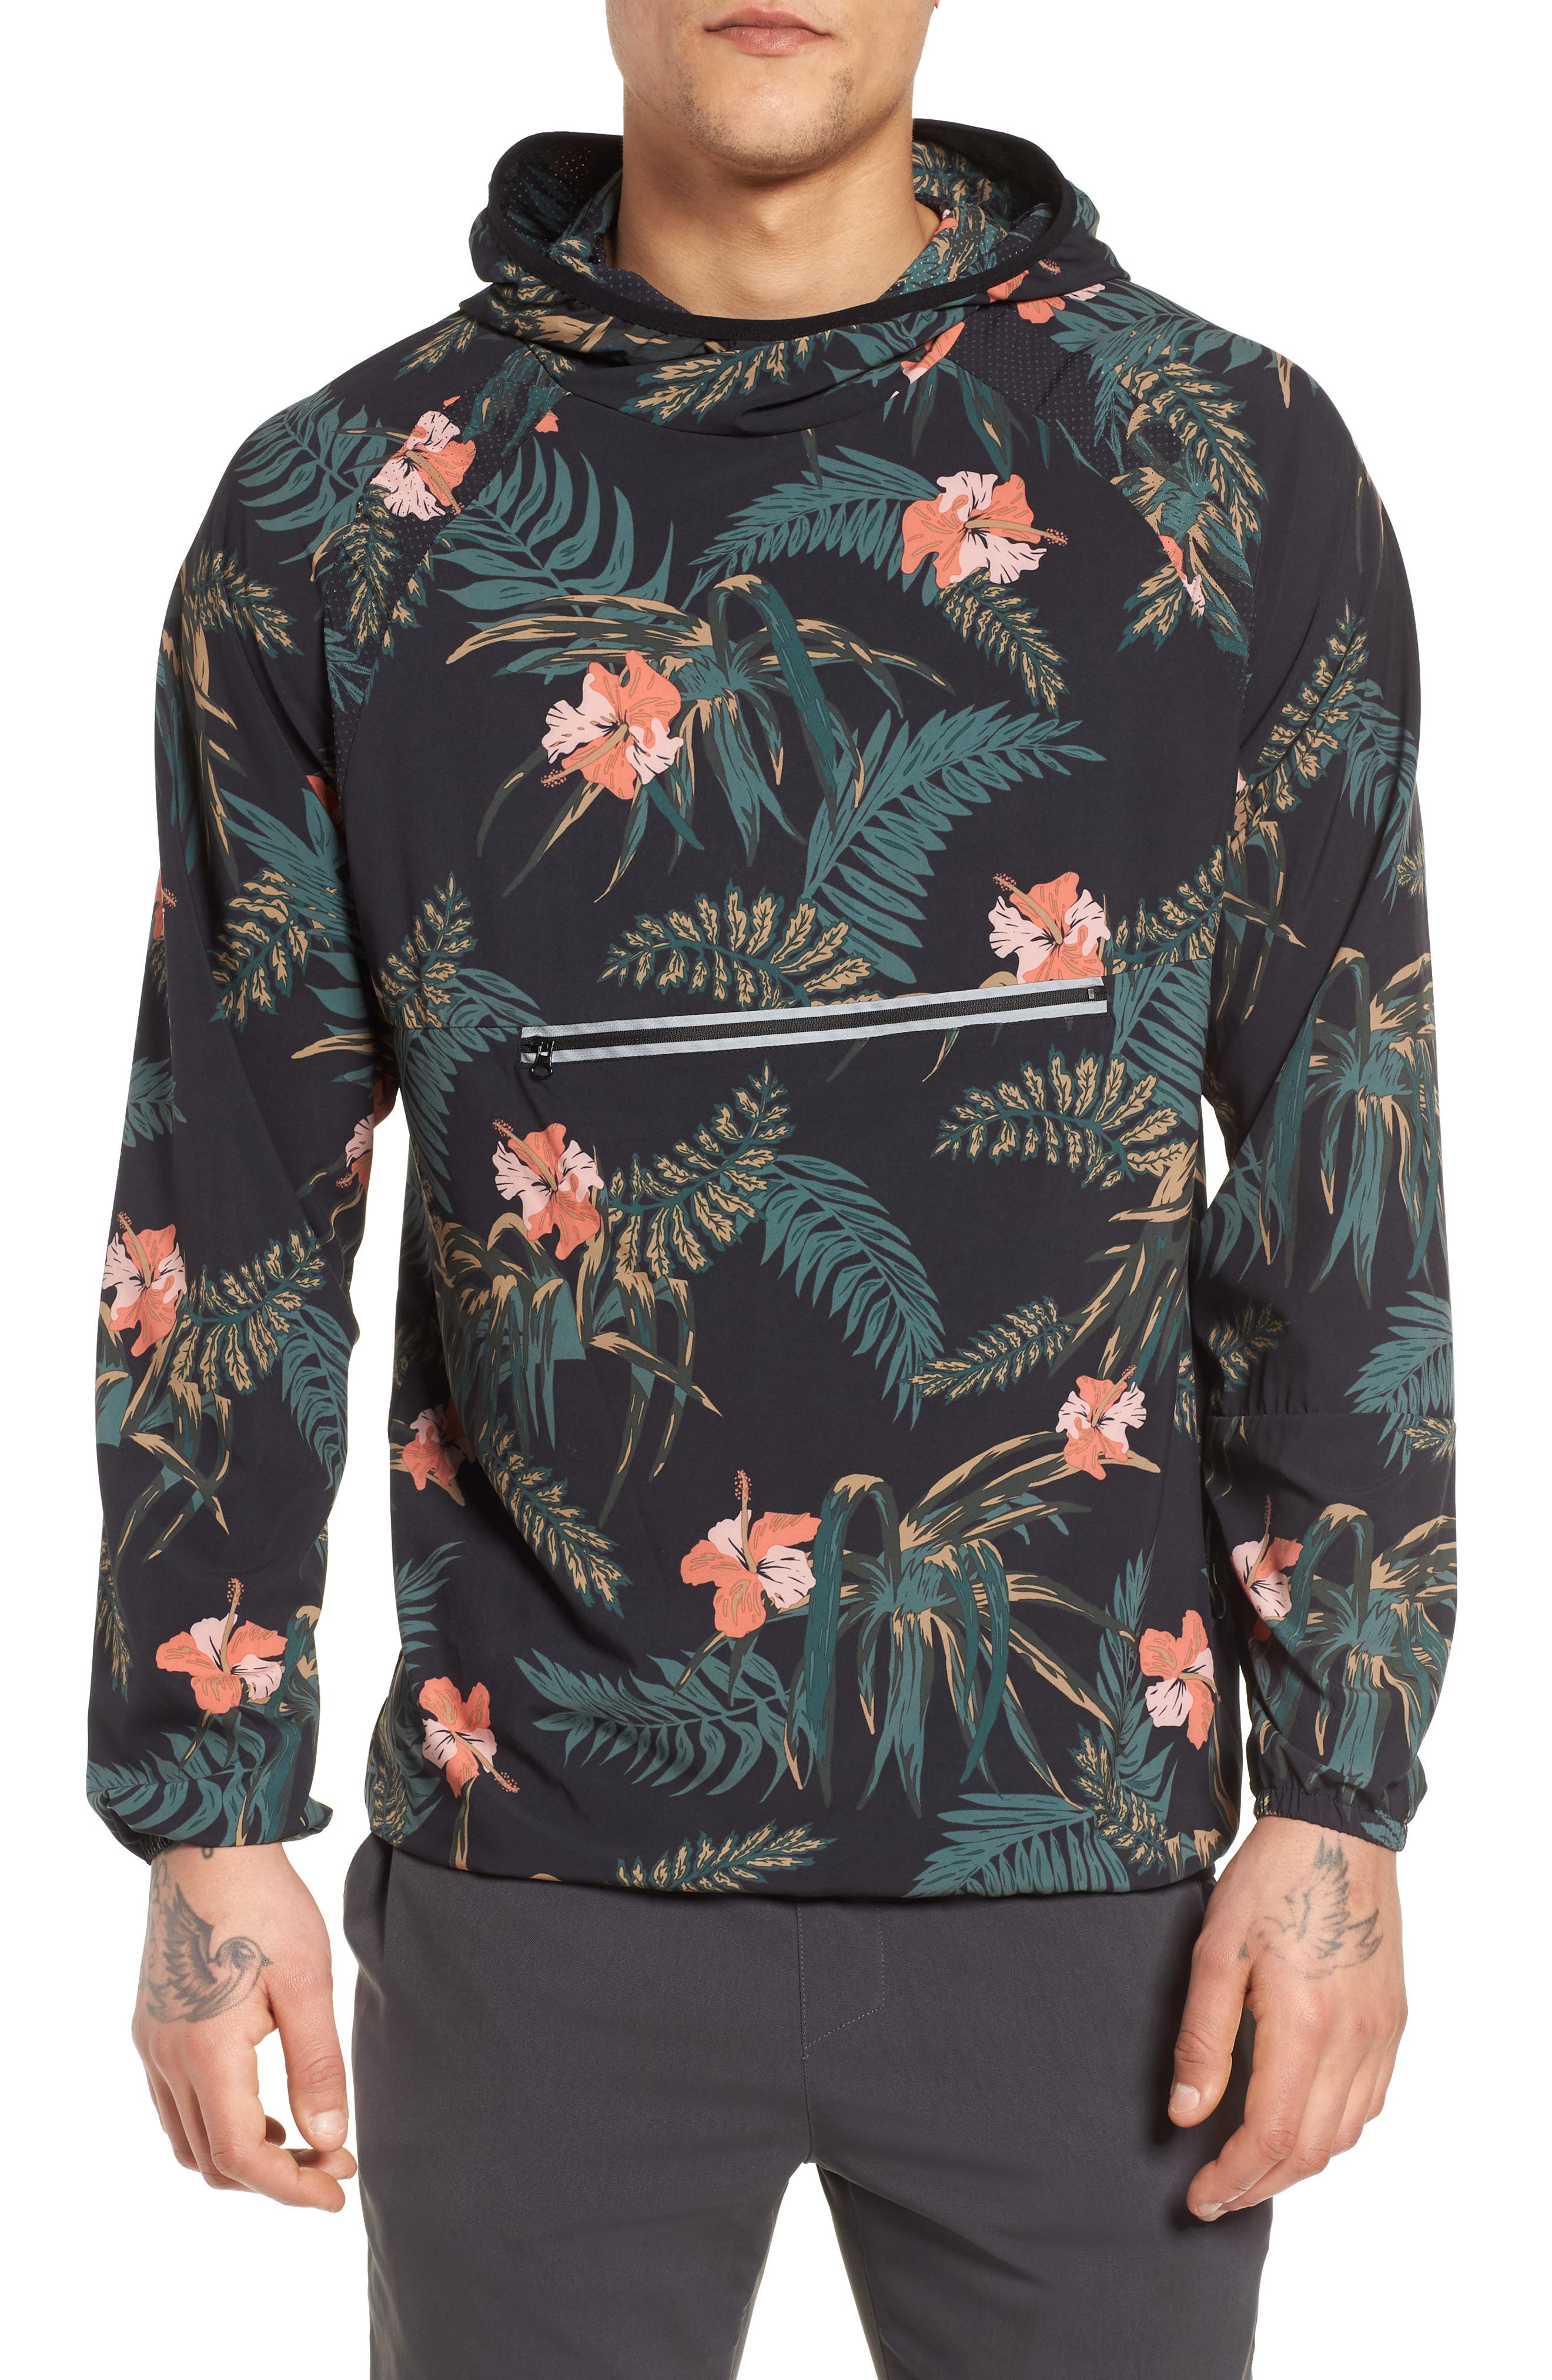 Ignite Pullover,                             Main thumbnail 1, color,                             Floral/ Multi